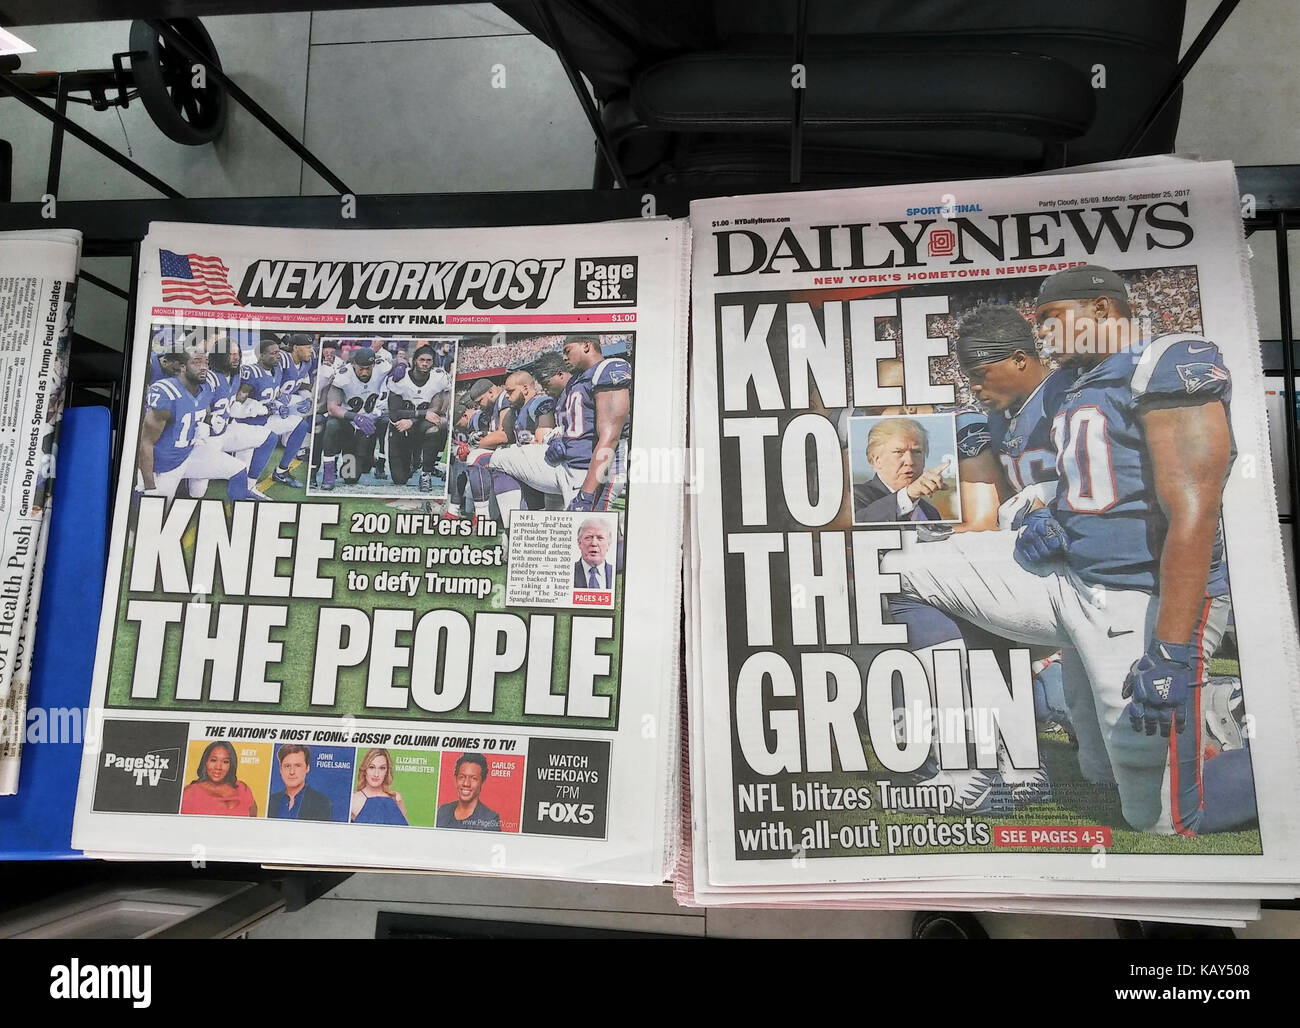 New York newspapers on Monday, September 25, 2017 report on the feud between some NFL players and US President Donald - Stock Image